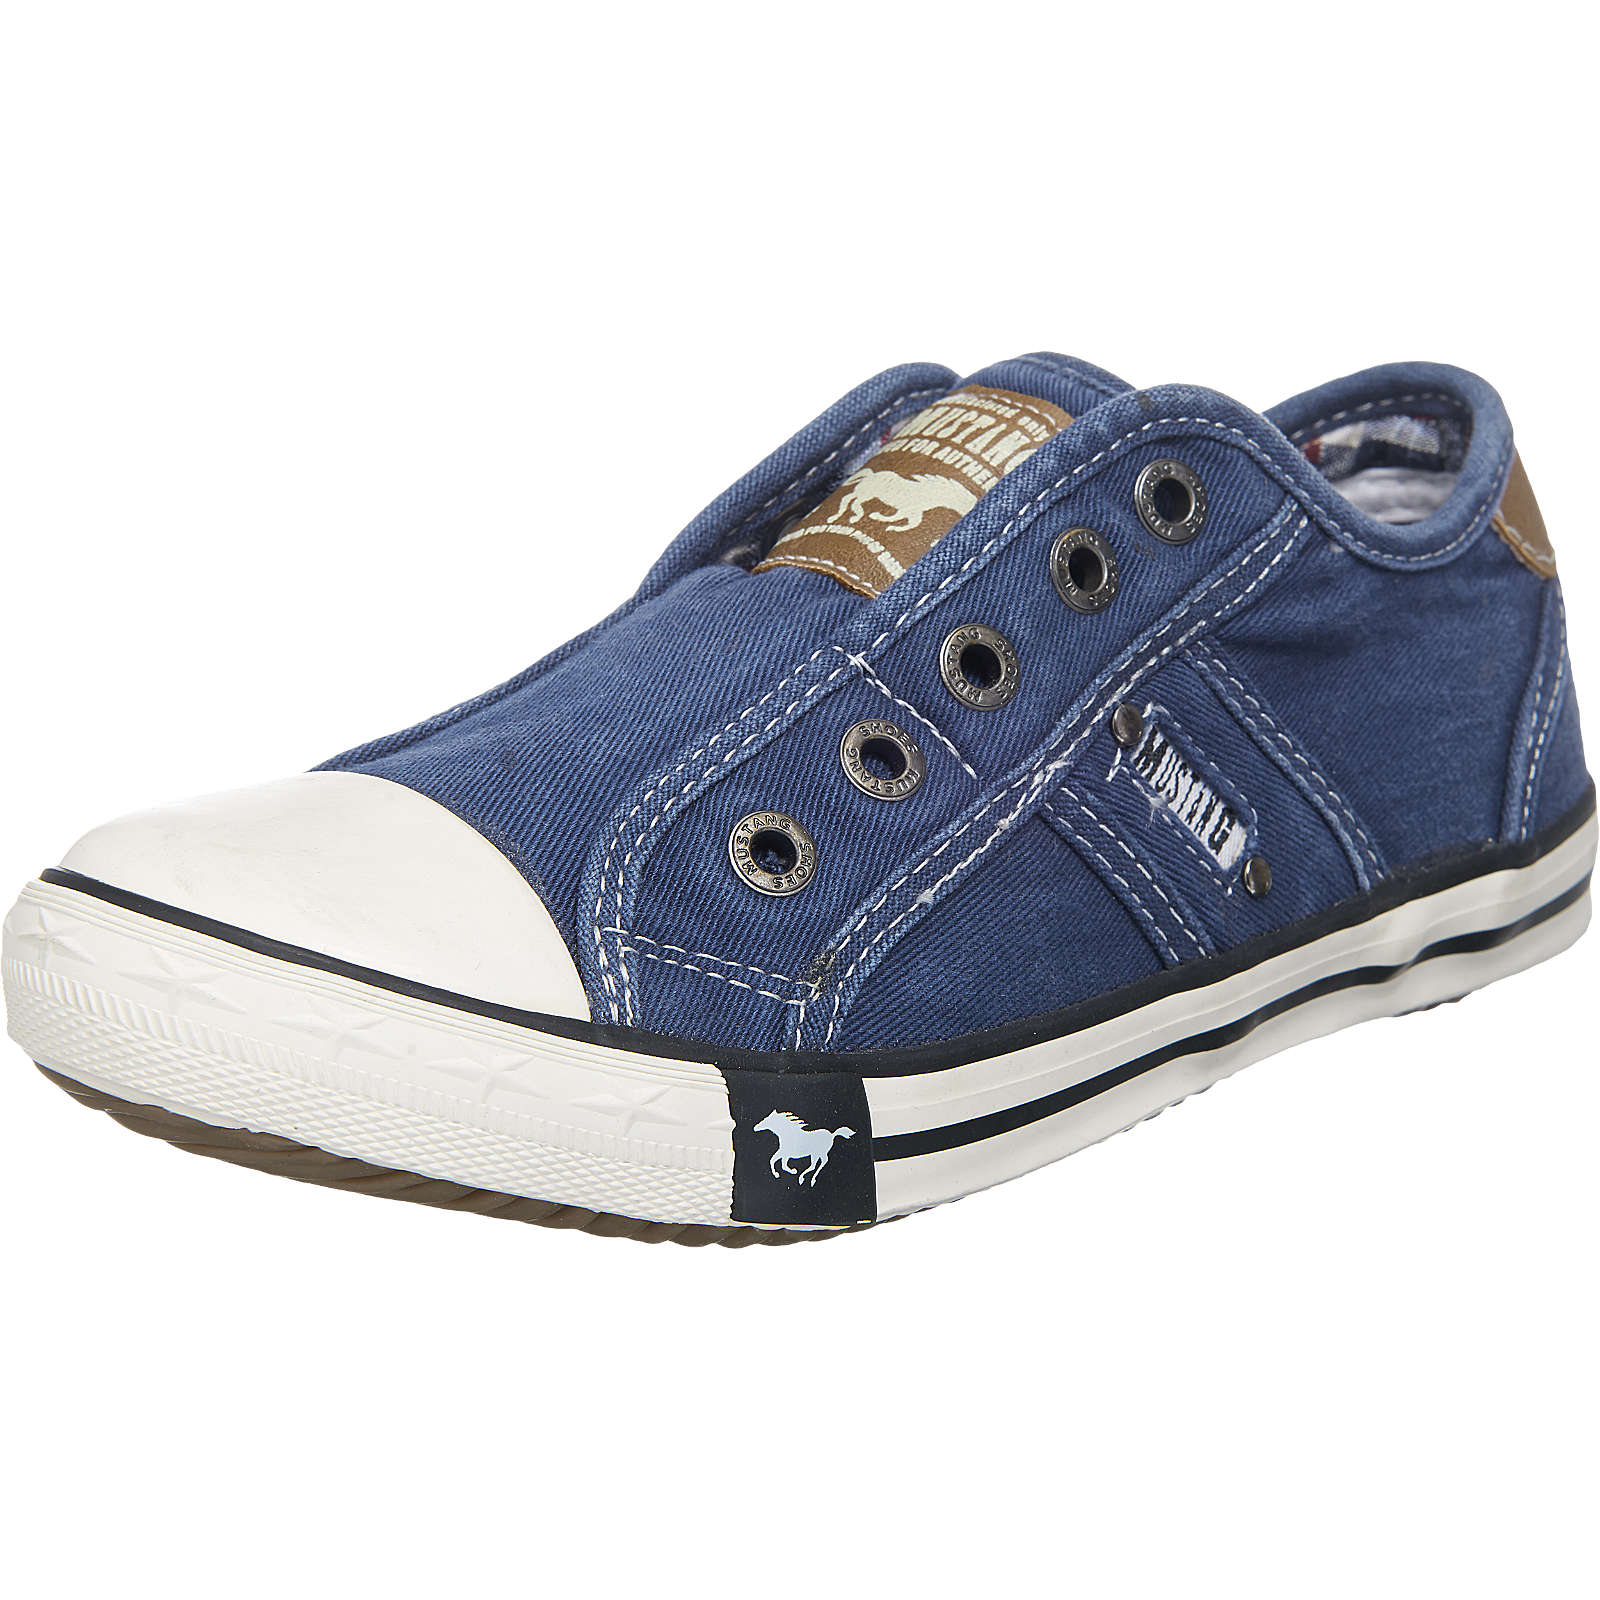 MUSTANG Kinder Slipper blau Gr. 35